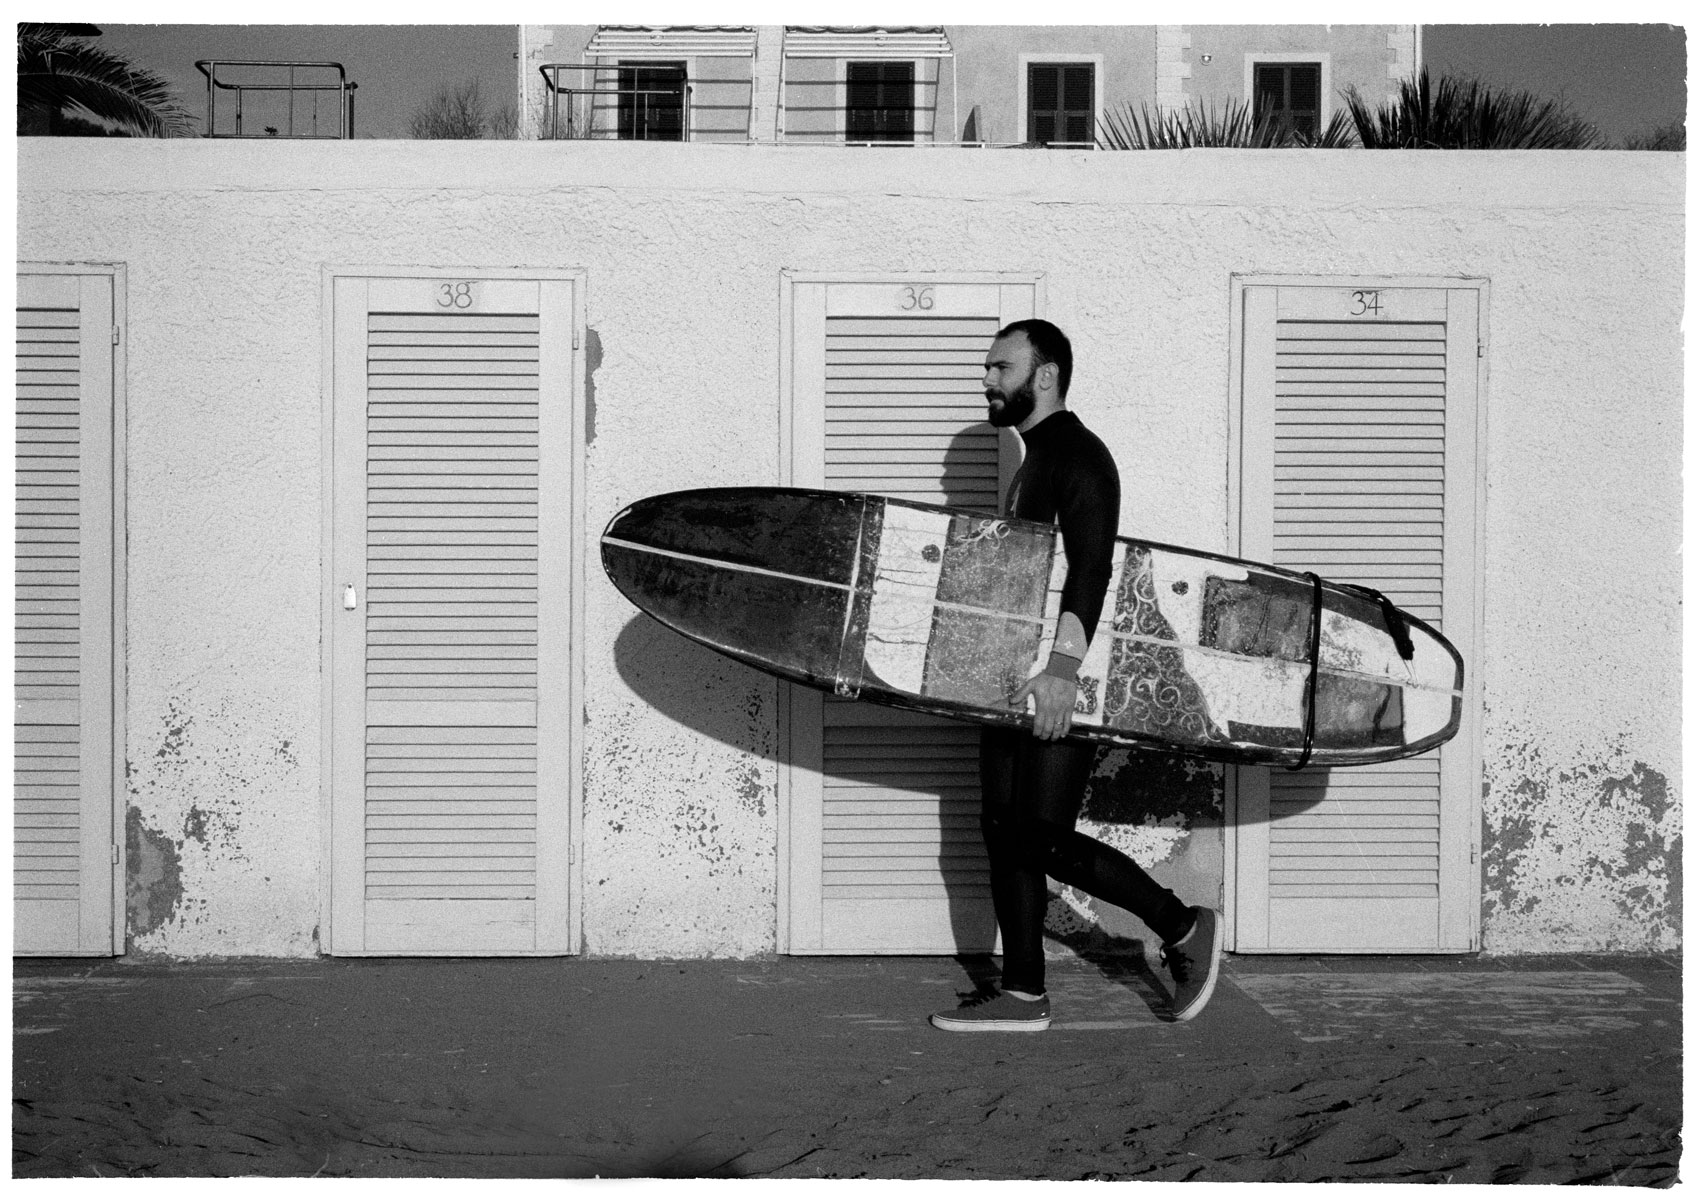 Surfer . Carrara 2015